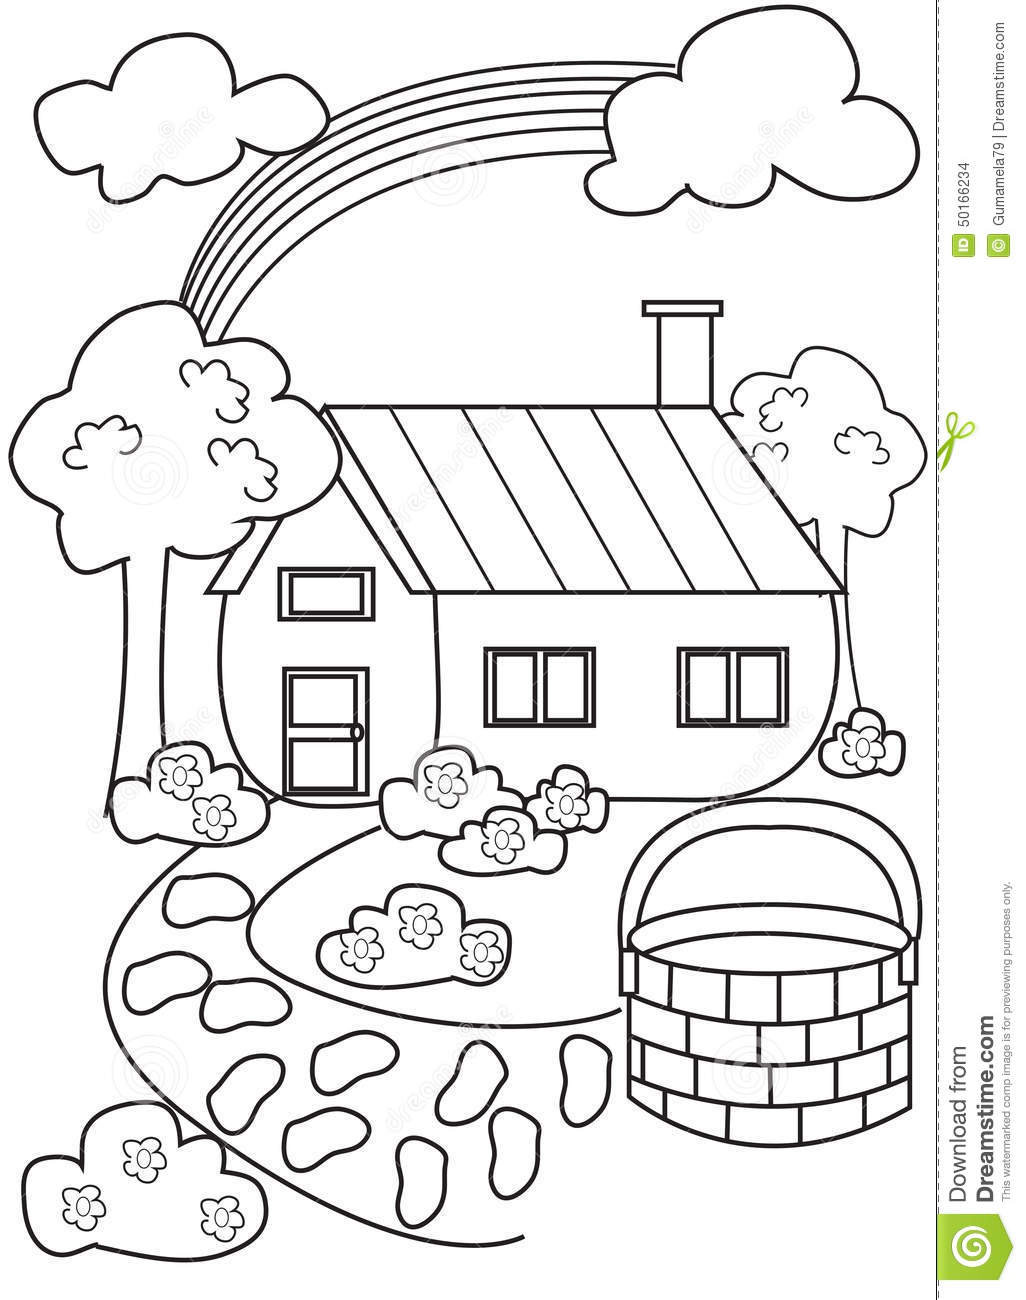 House Coloring Page Illustration 50166234